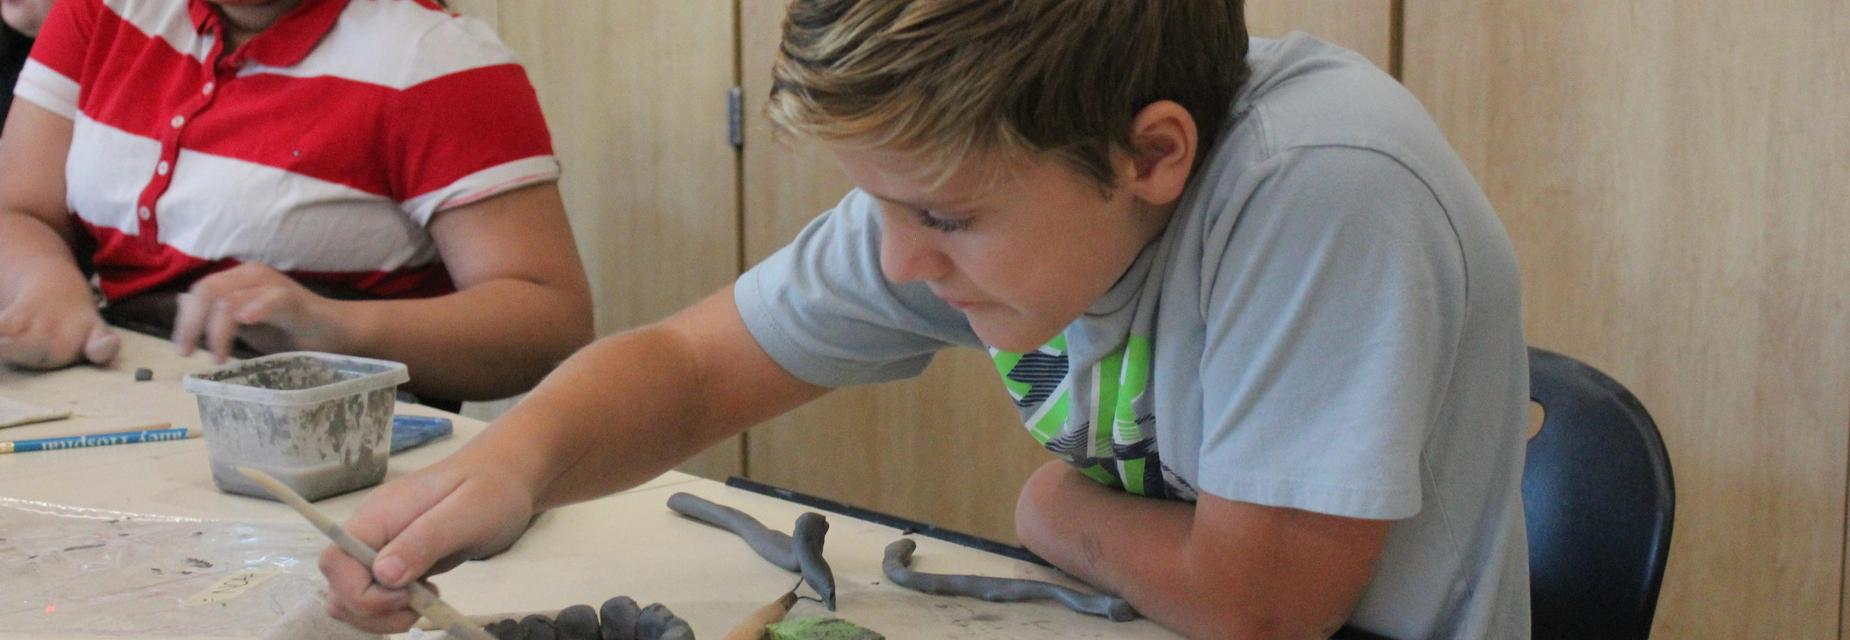 Students working with clay in art class